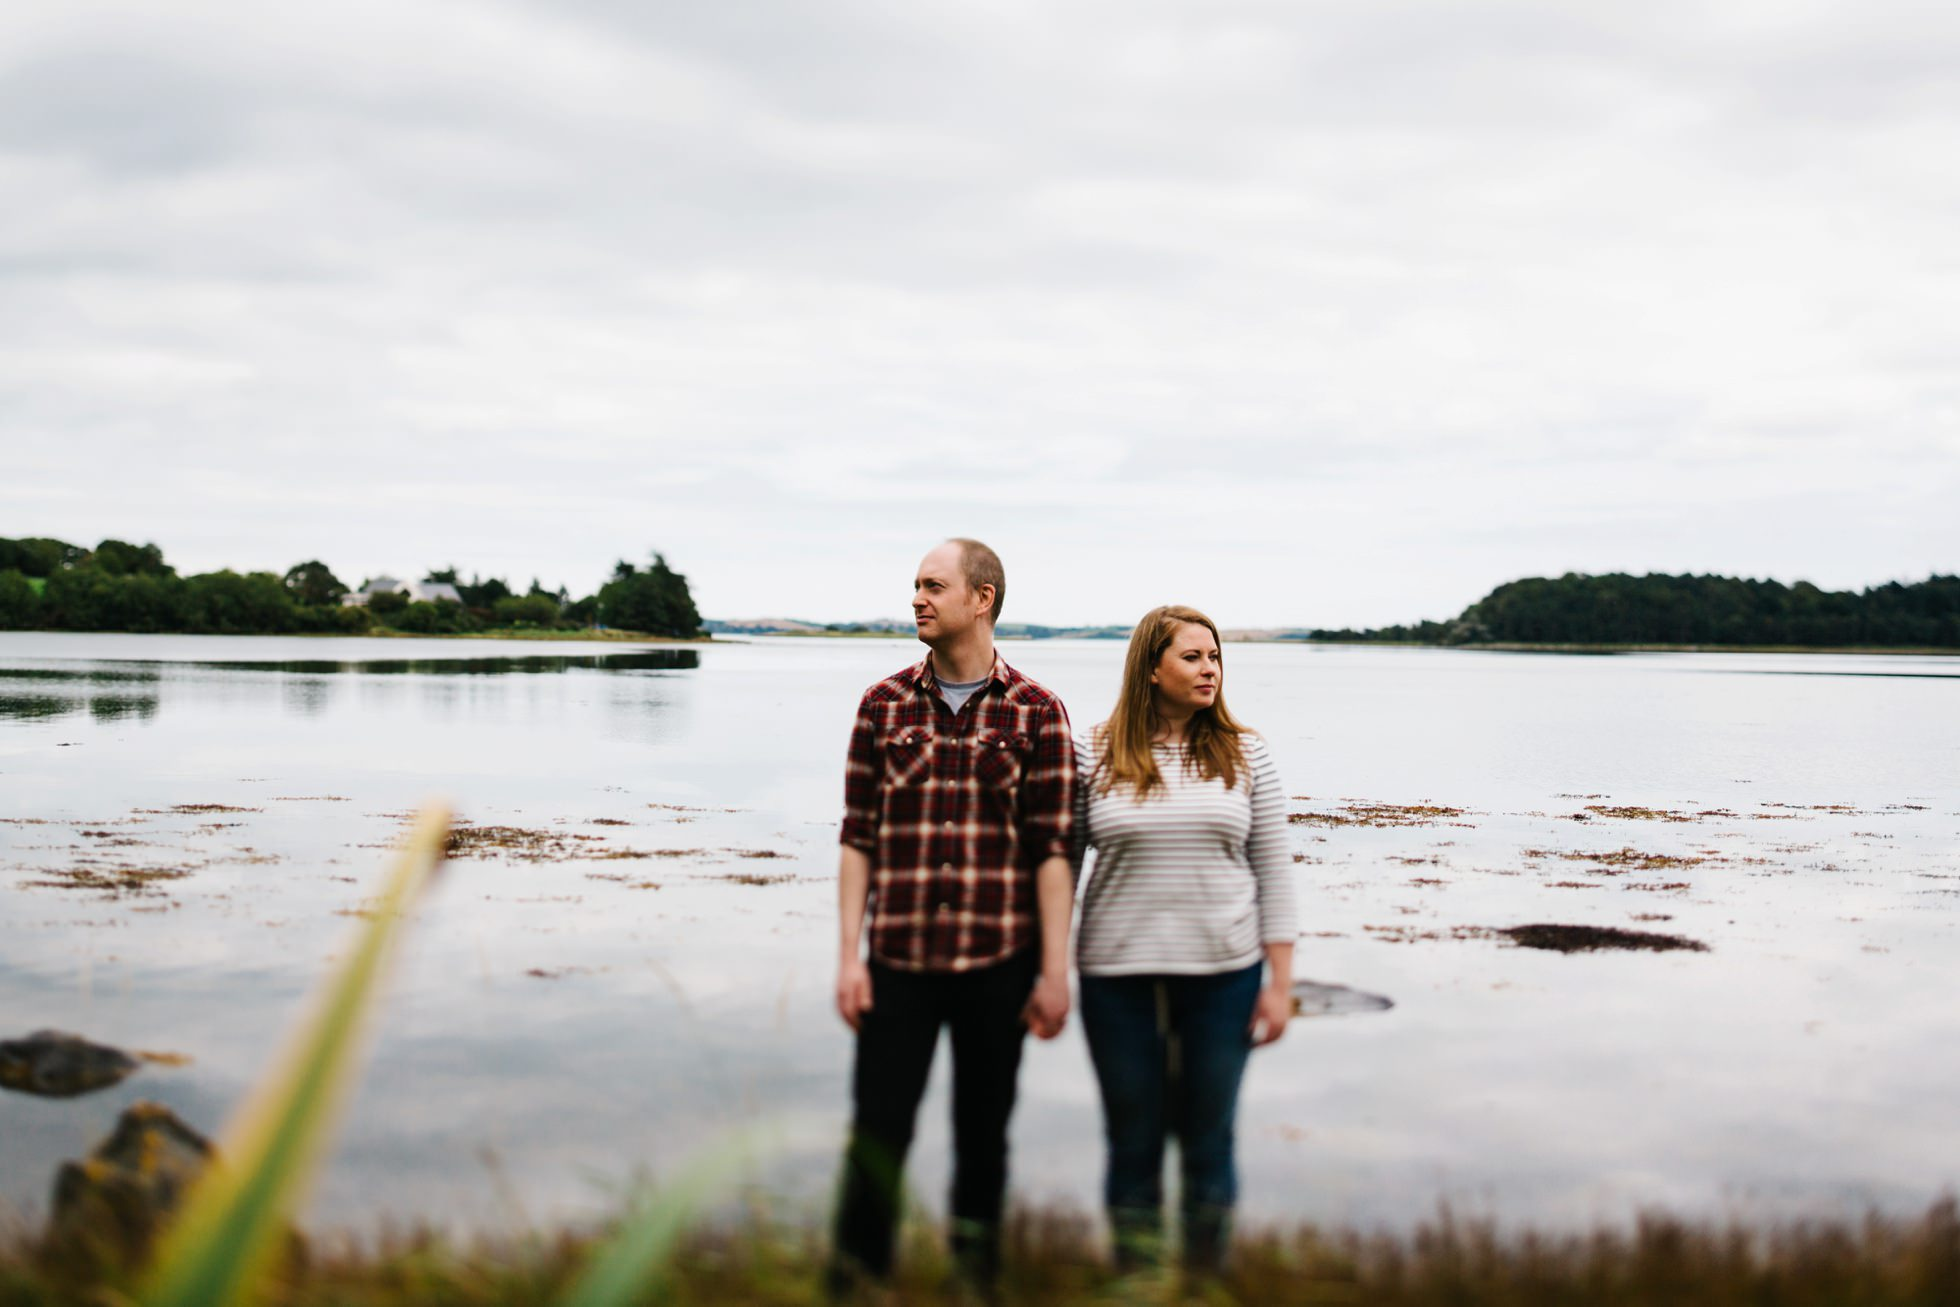 what price are engagement photoshoots in northern ireland